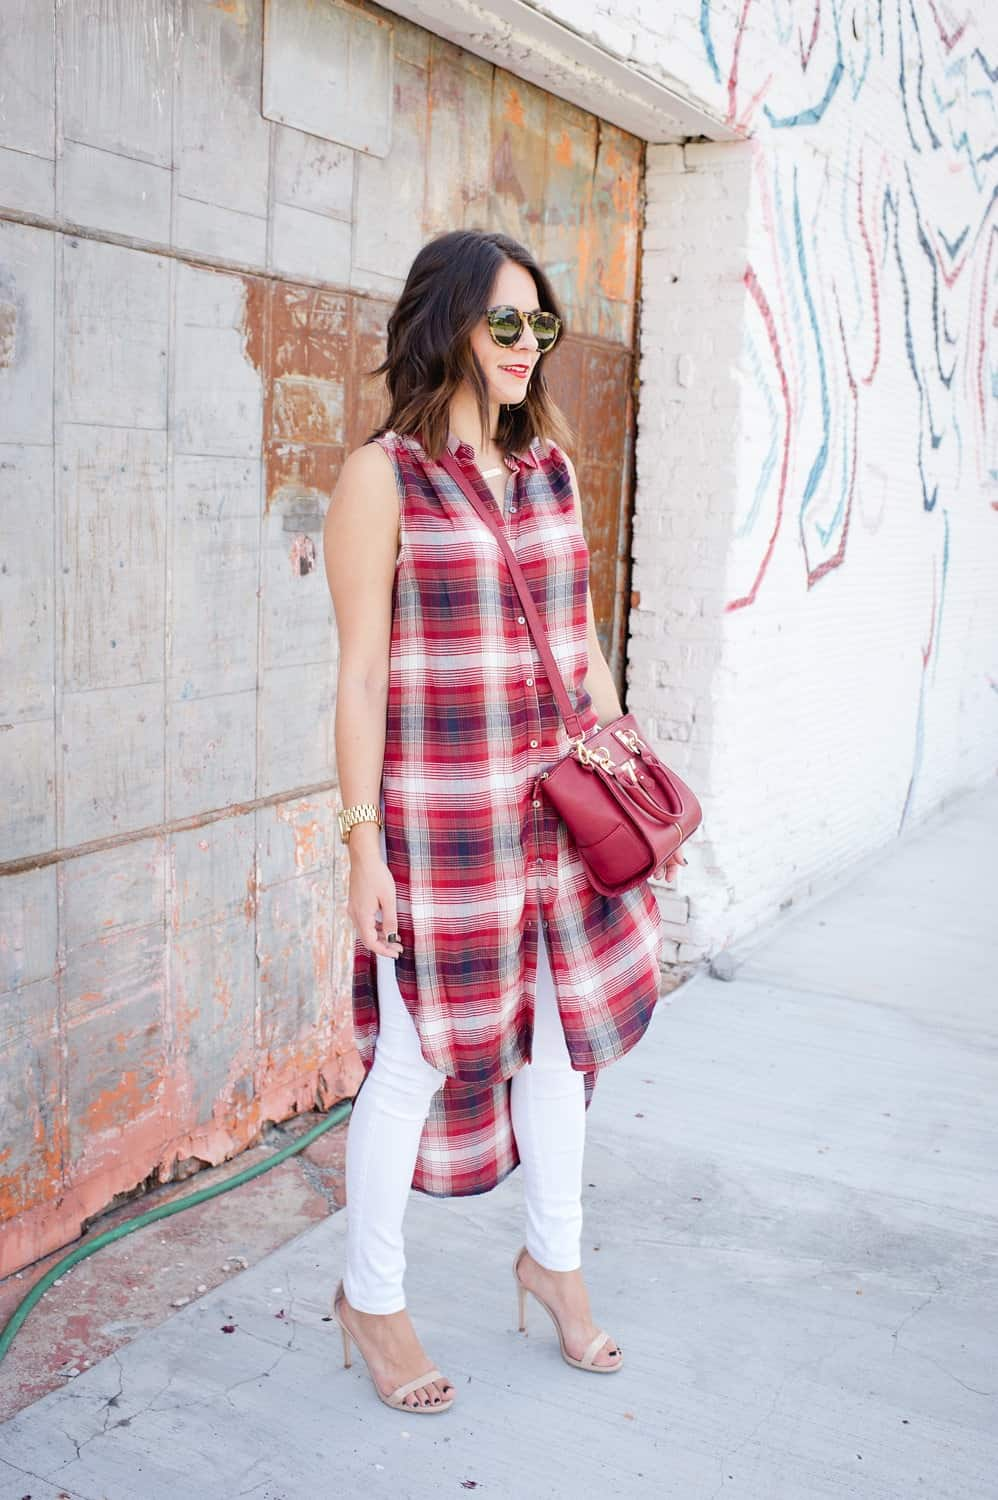 Plaid long shirt and white jeans for fall via @mystylevita [My Style Vita] - 3